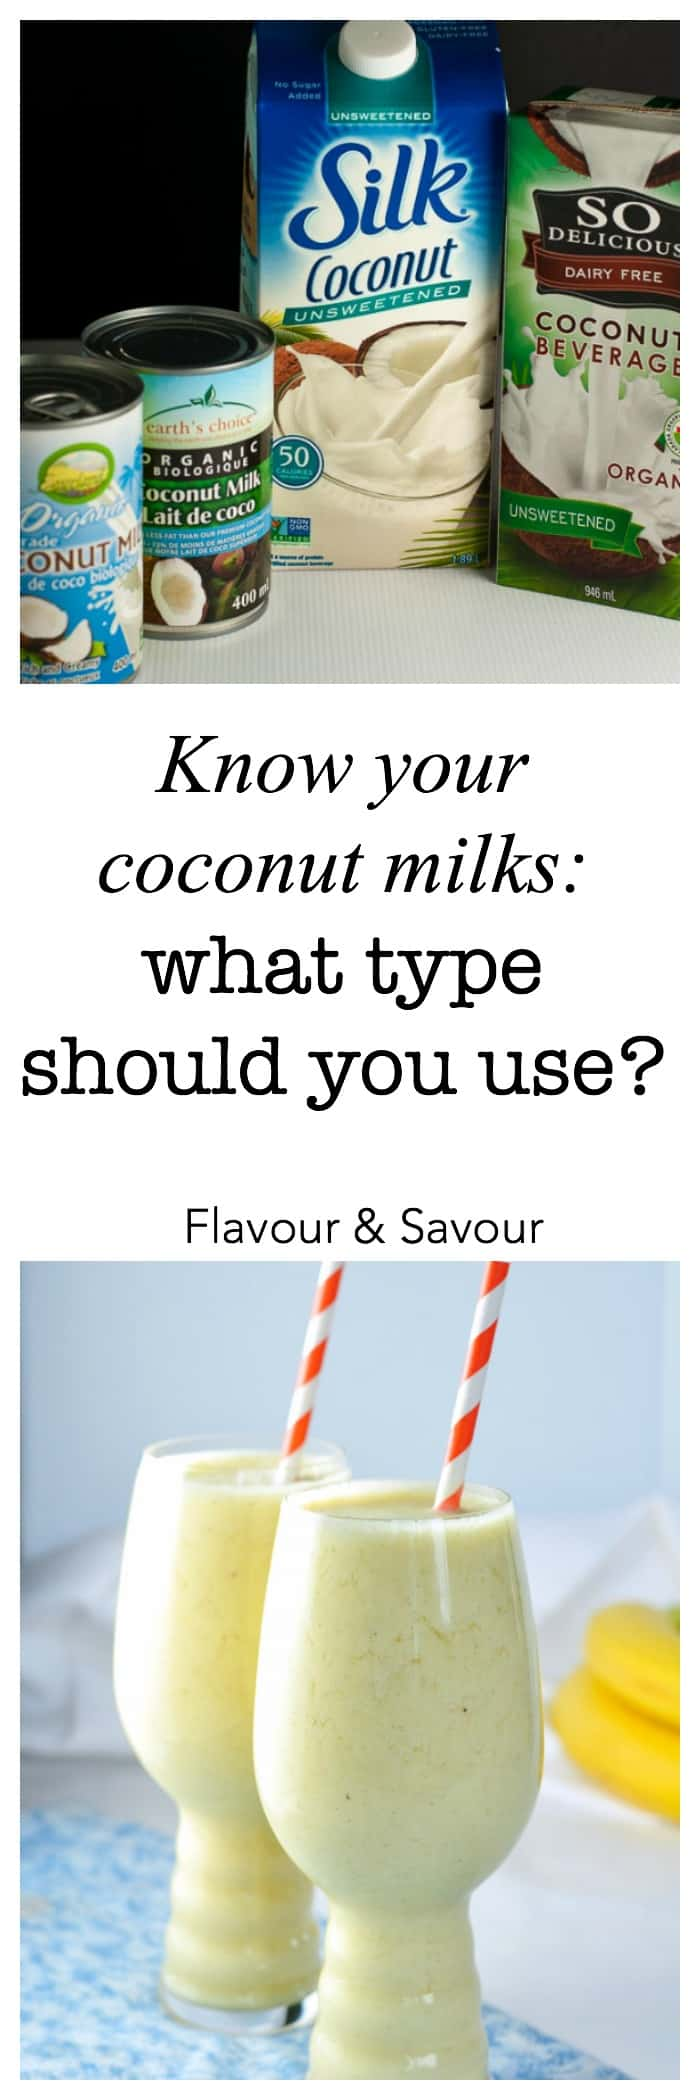 Know Your Coconut Milks: What type of coconut milk should I use in this recipe? A quick guide. |www.flavourandsavour.com